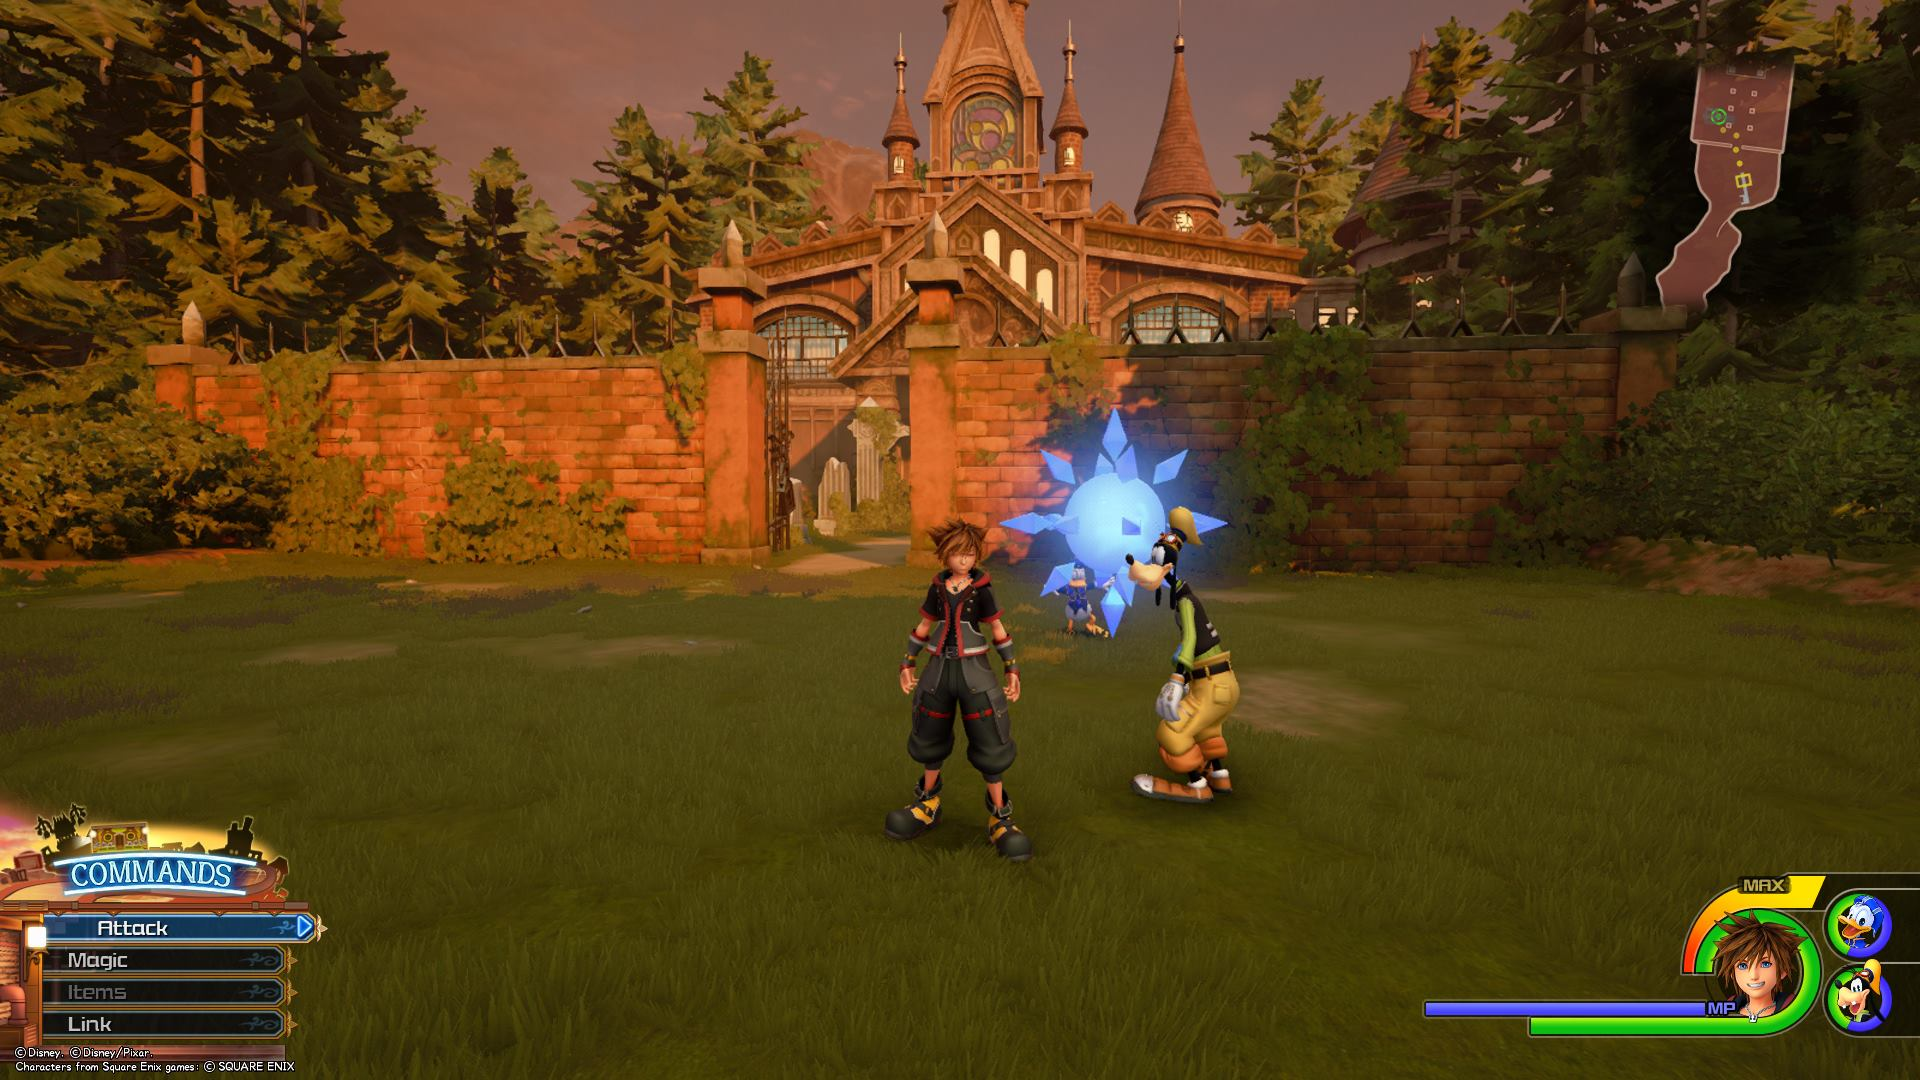 The third Battlegate in Kingdom Hearts 3 is located in the Old Mansion area of Twilight Town.